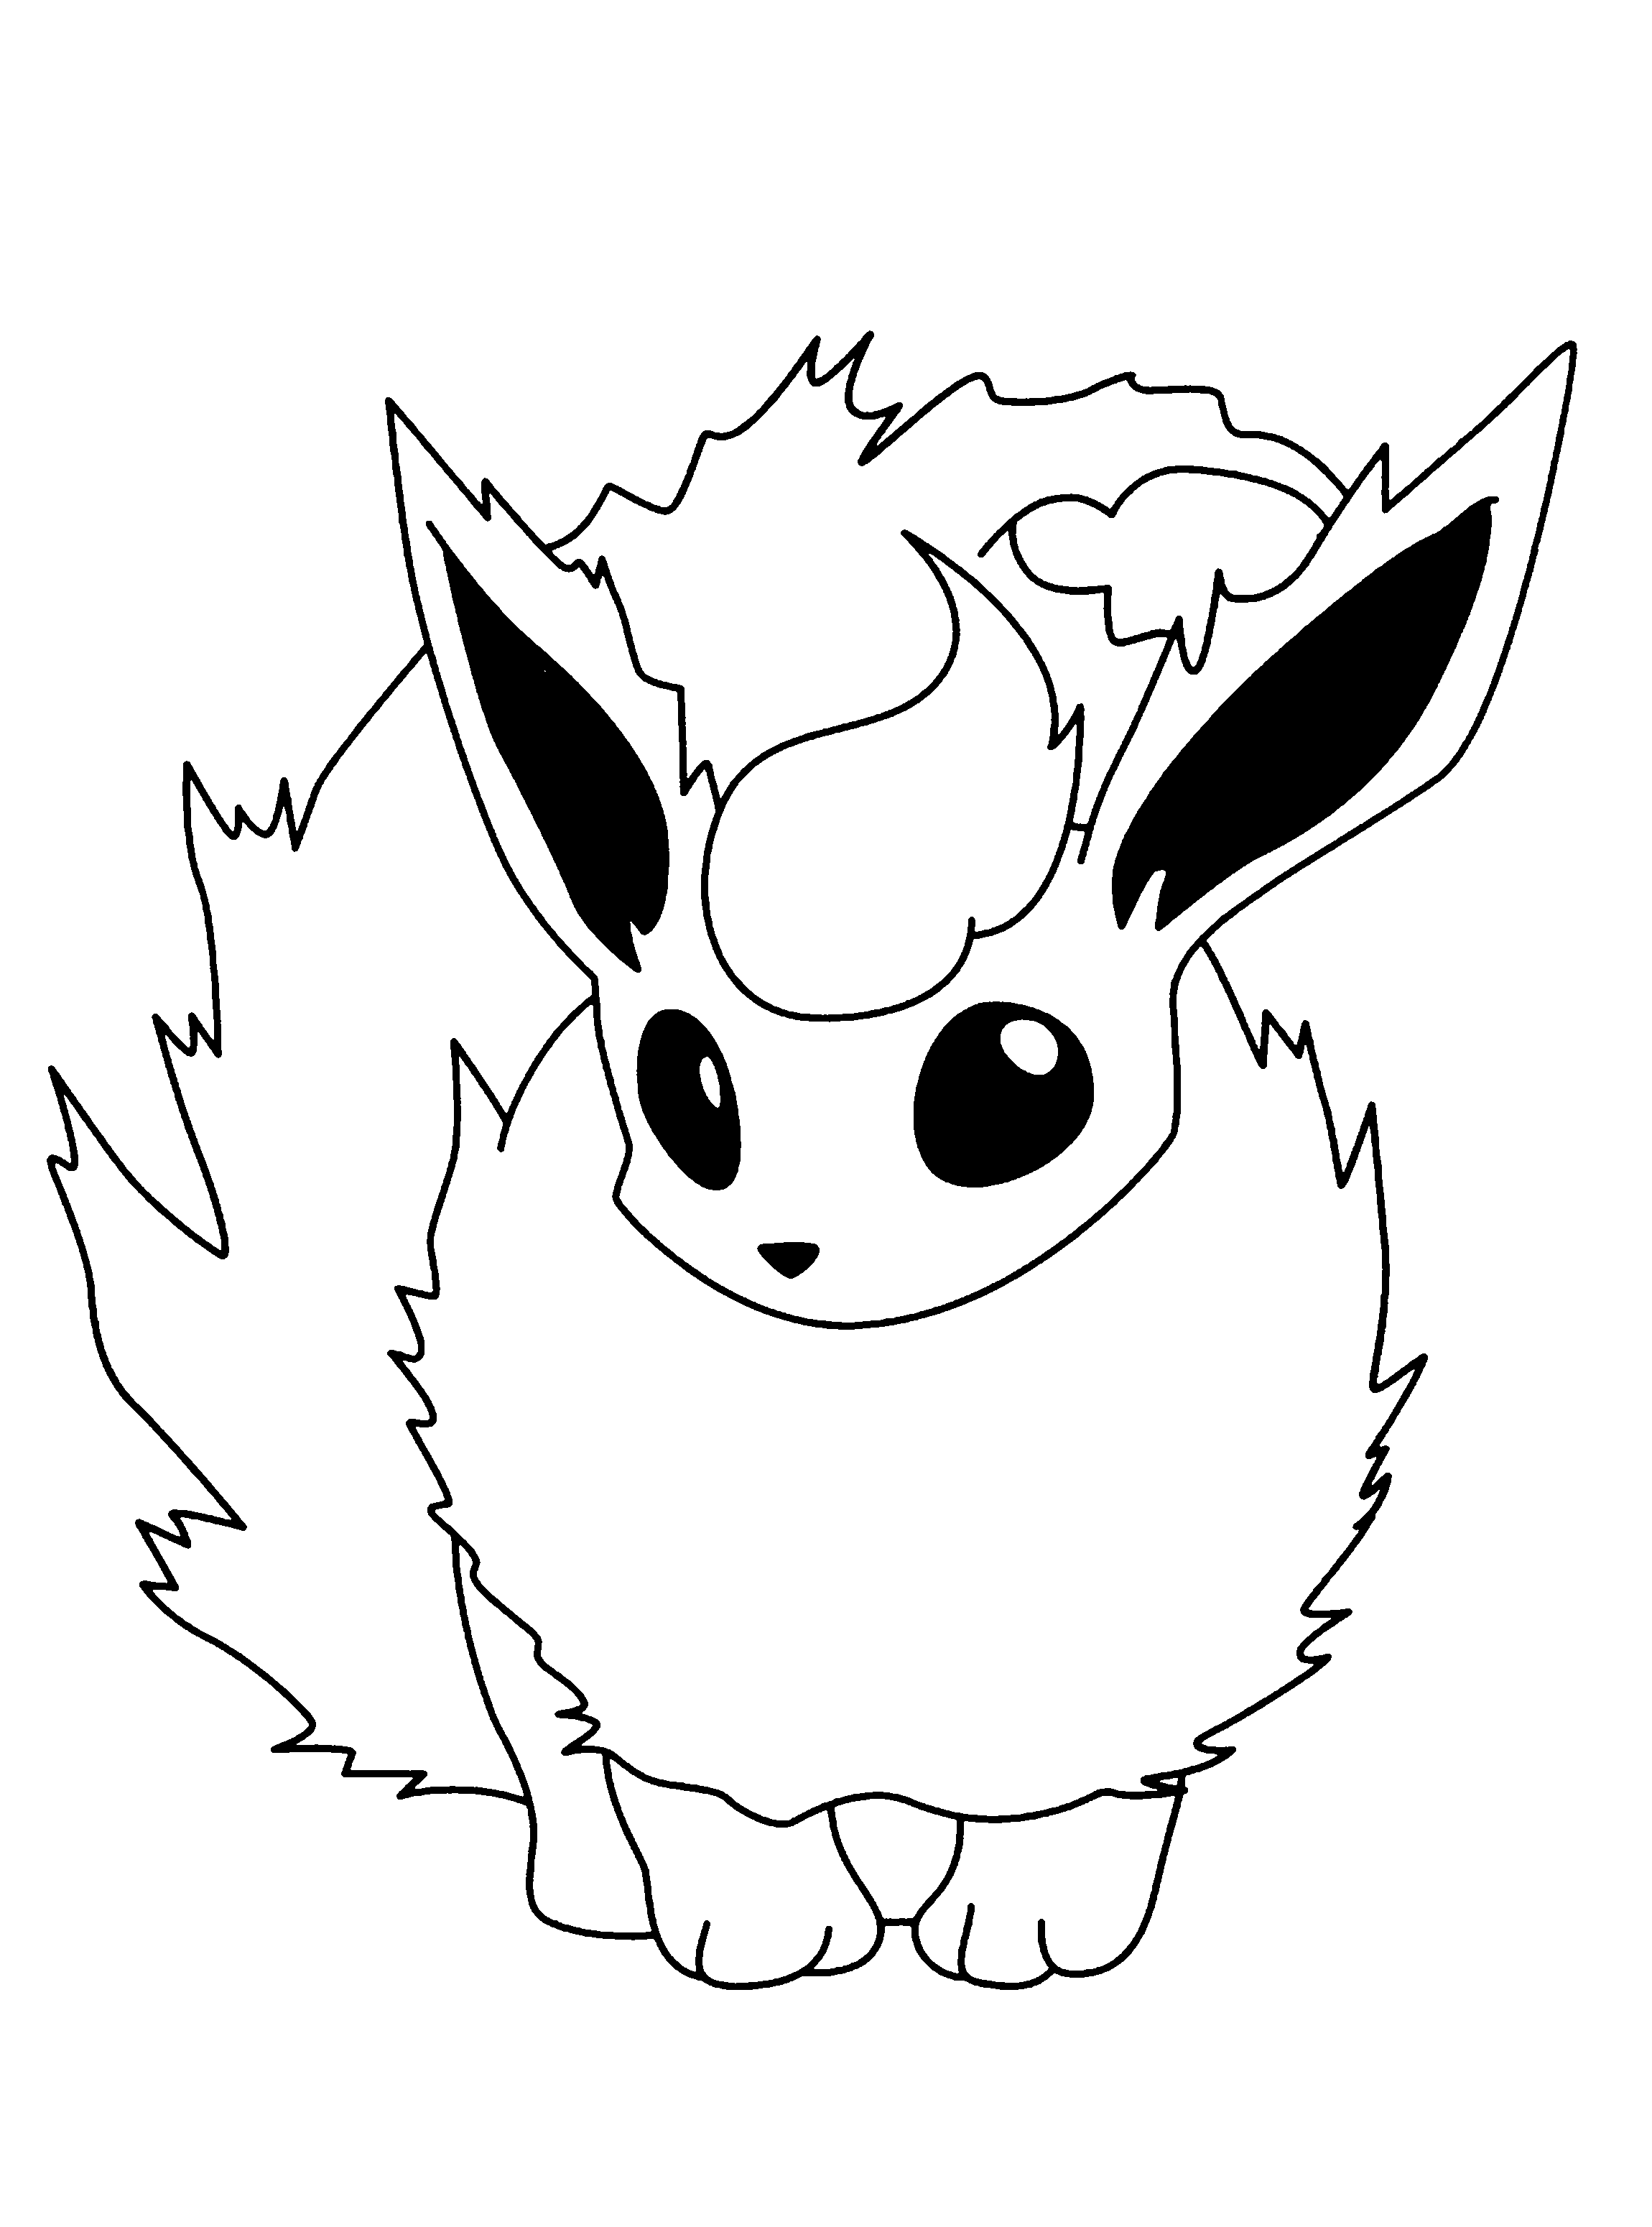 Pokemon X And Y Legedaries Coloring Pages | Pokémon ...